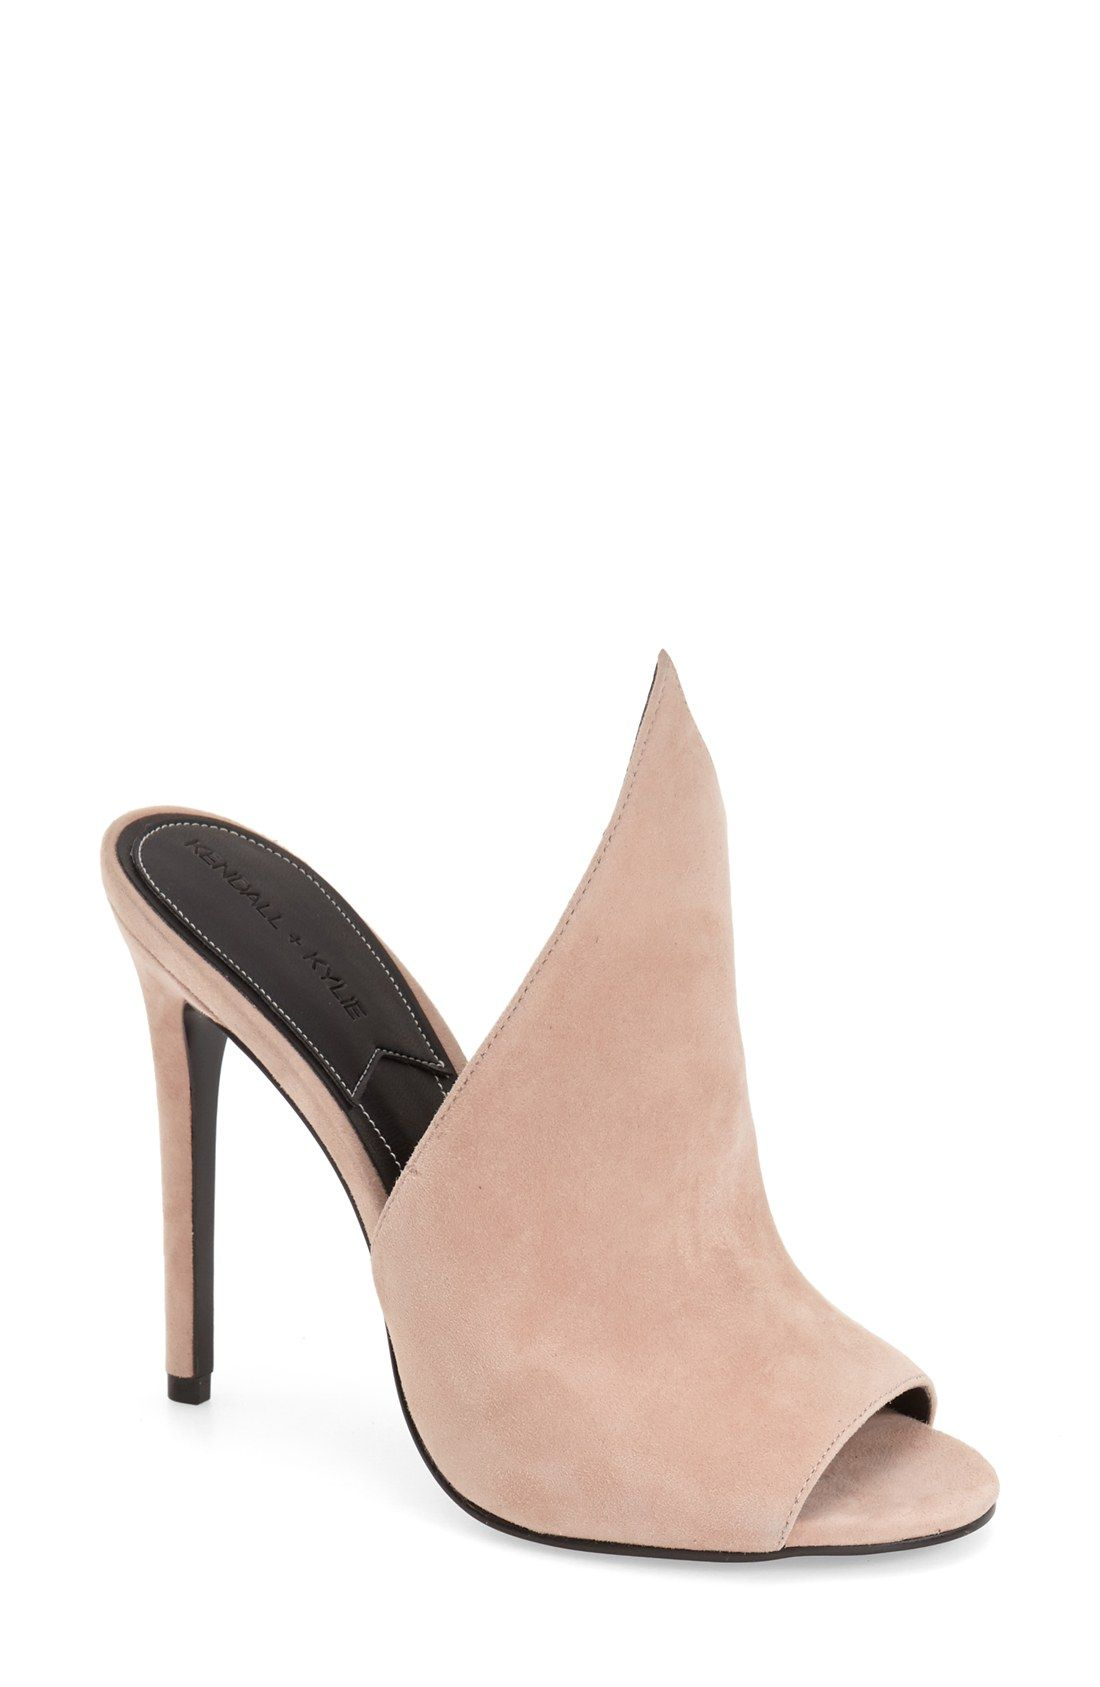 KENDALL KYLIE Soft Leather Pump Black ID98342